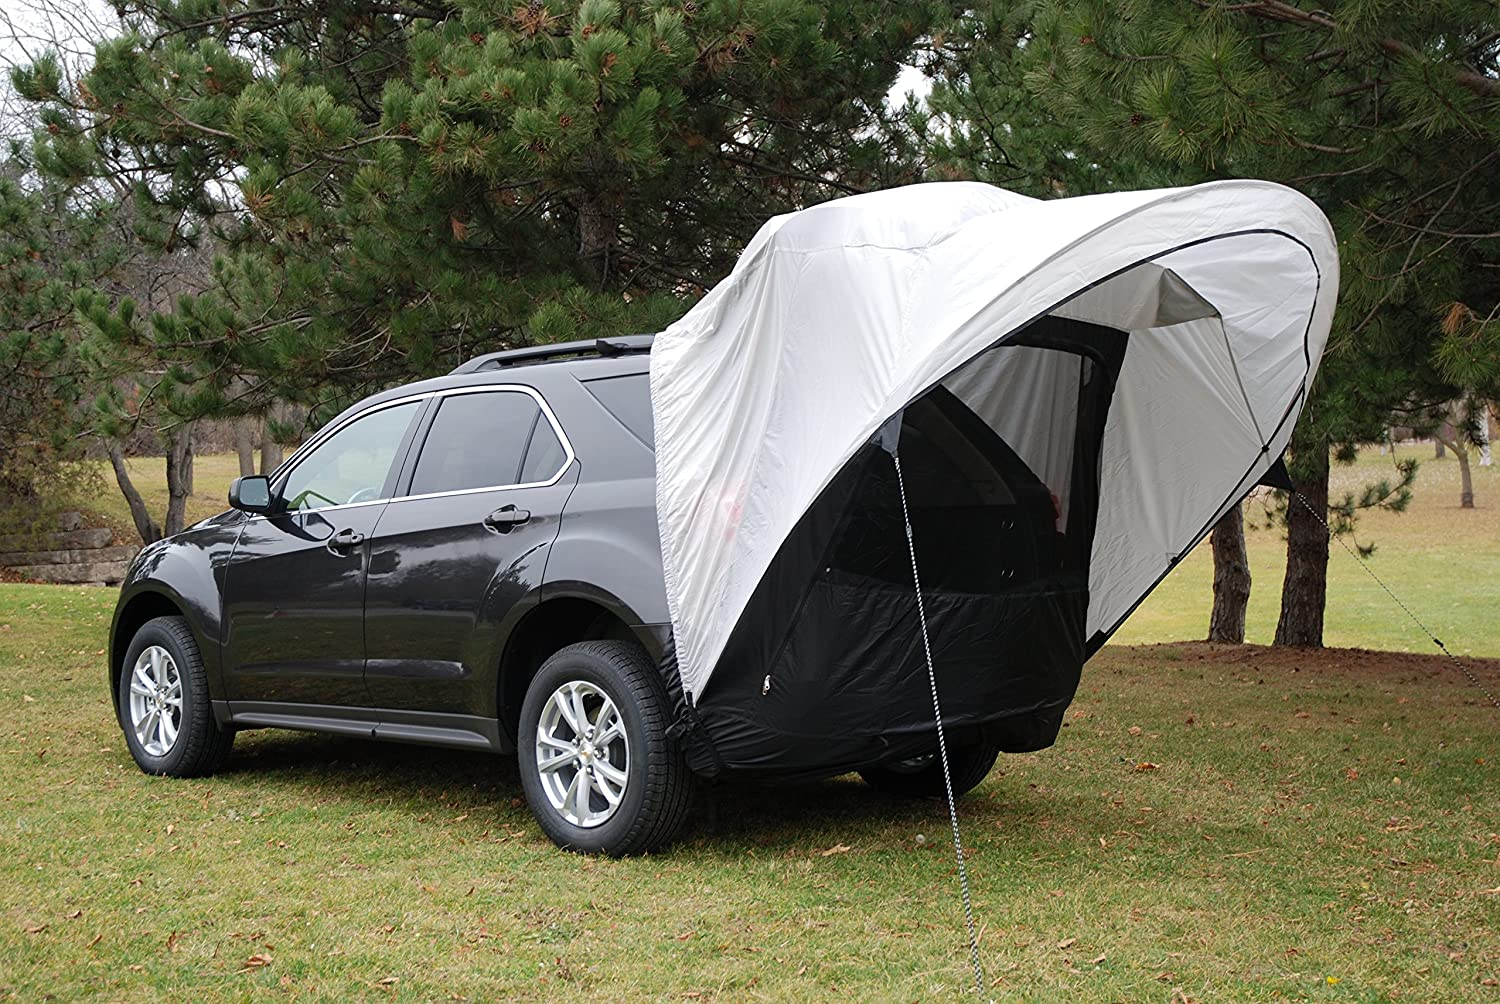 Amazon.com  Napier Sportz Cove 61500 SUV/Minivan Tent  Sports u0026 Outdoors & Amazon.com : Napier Sportz Cove 61500 SUV/Minivan Tent : Sports ...